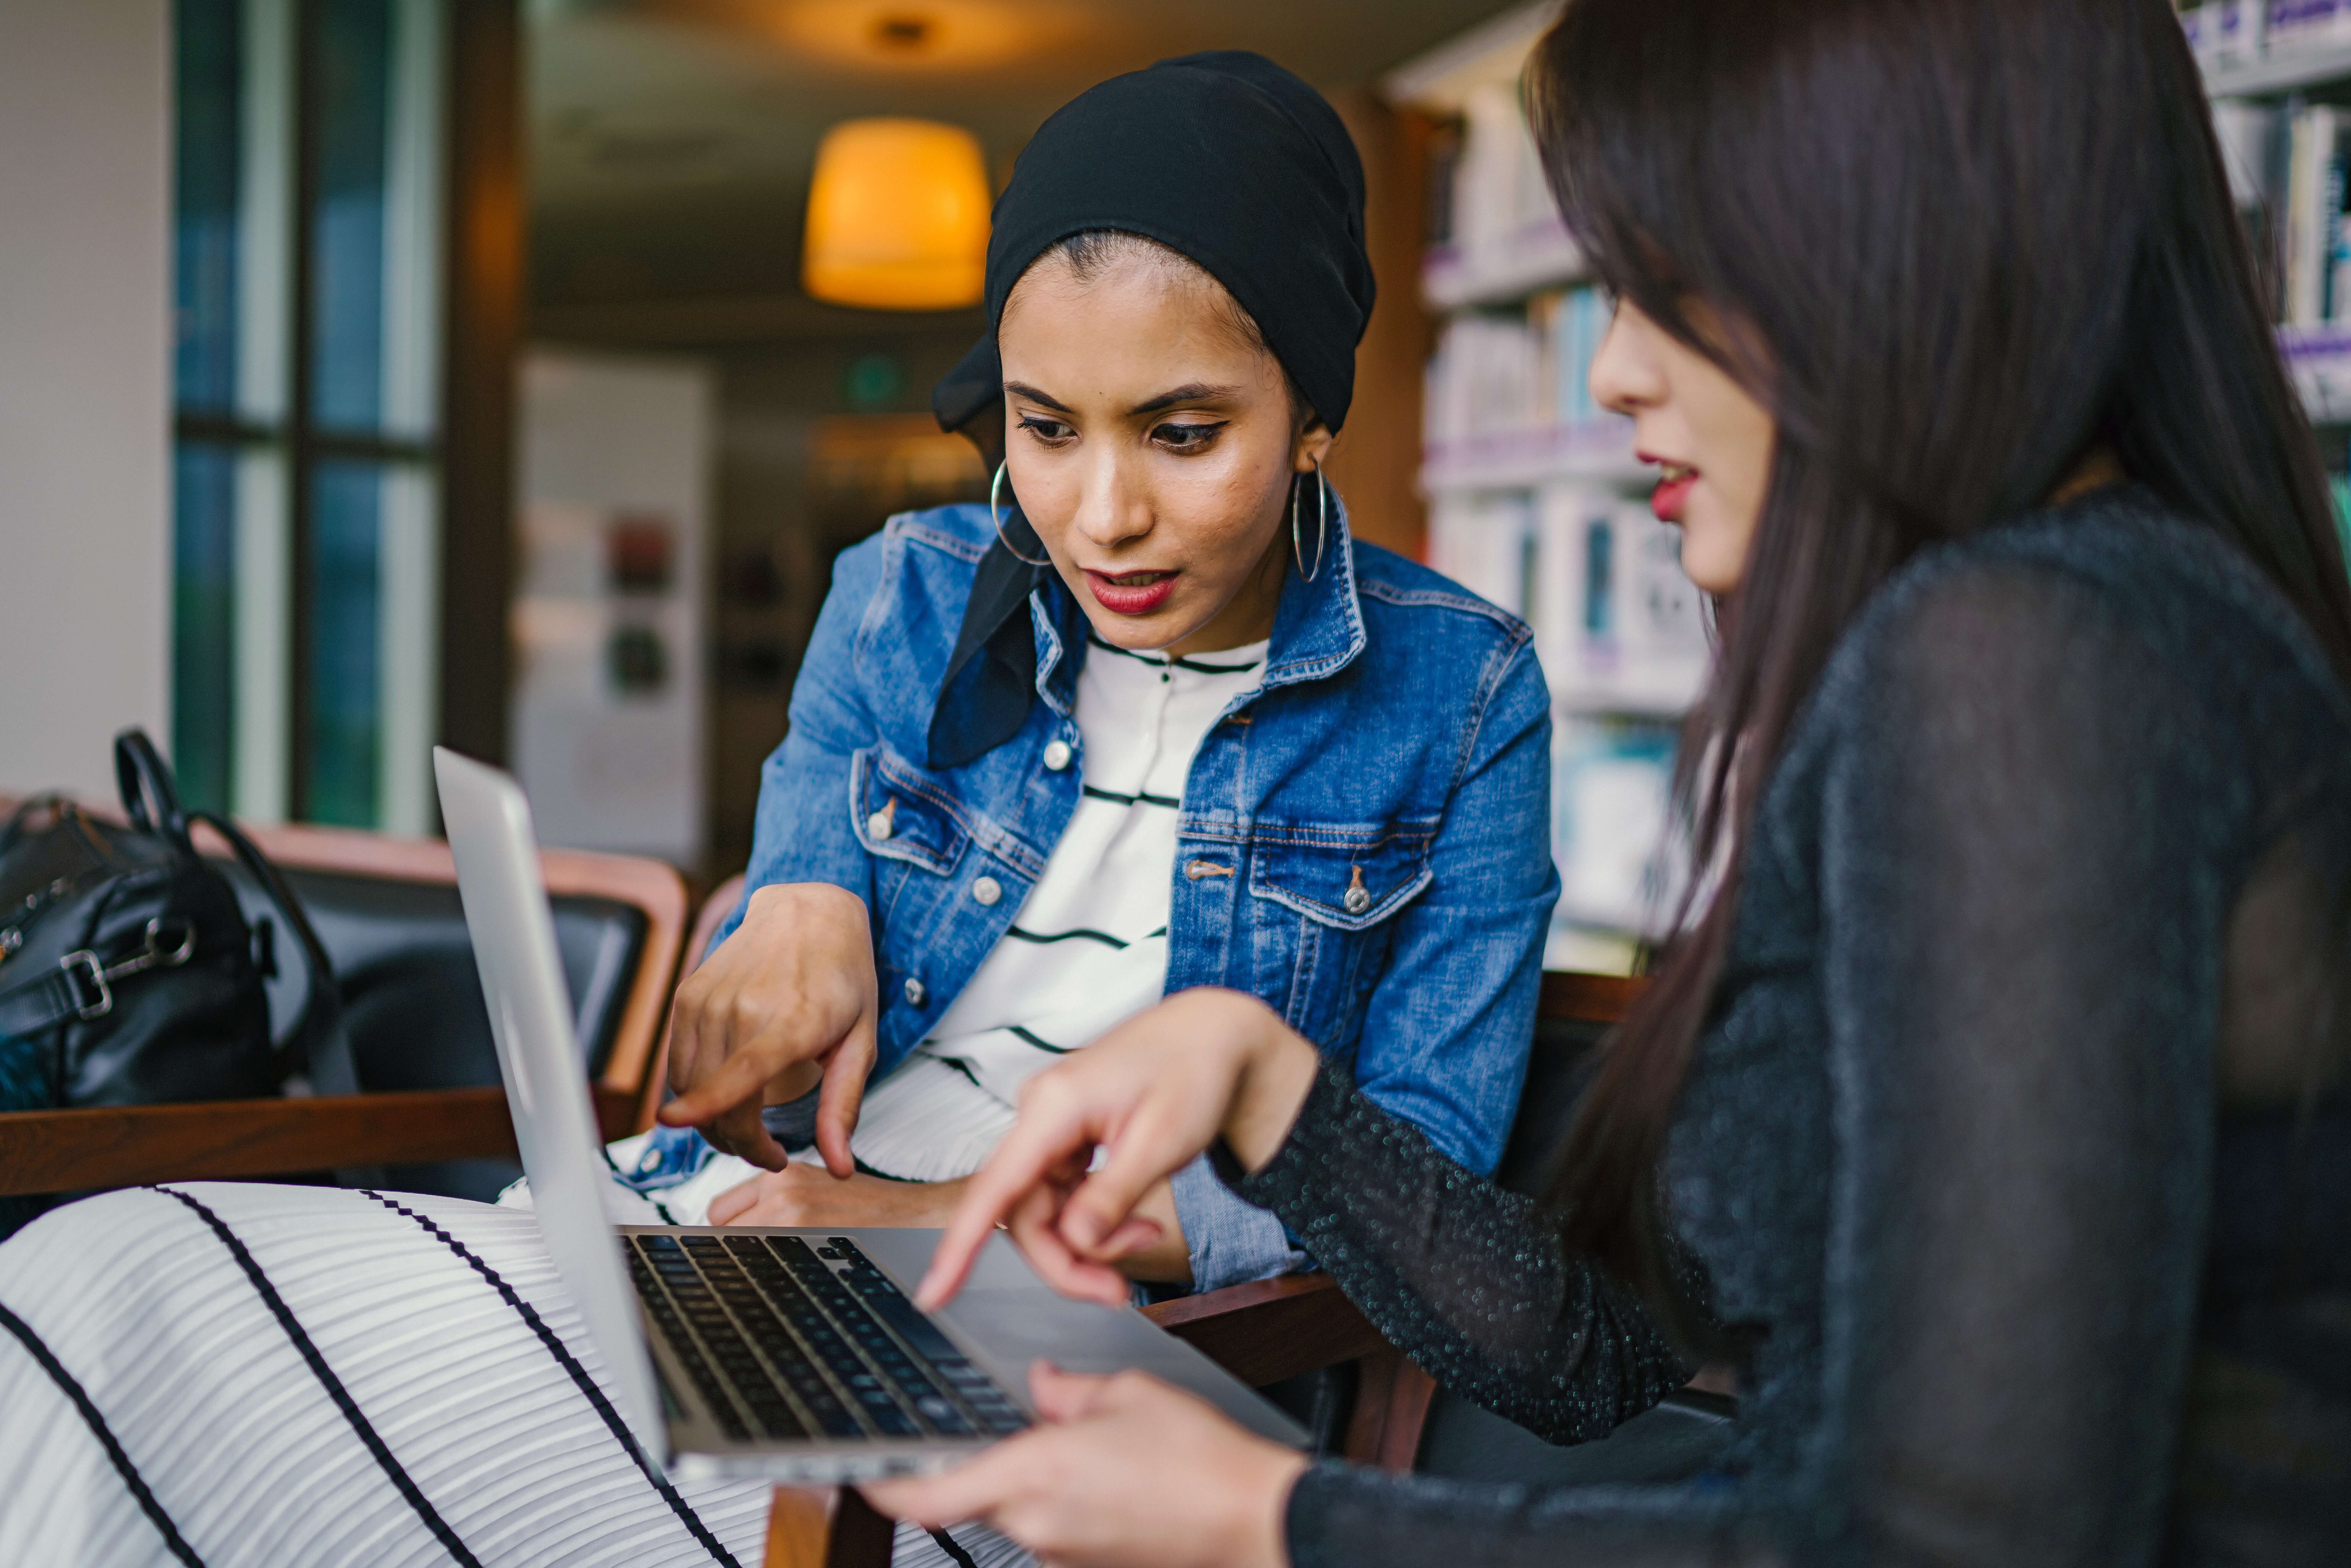 Women working together at a laptop